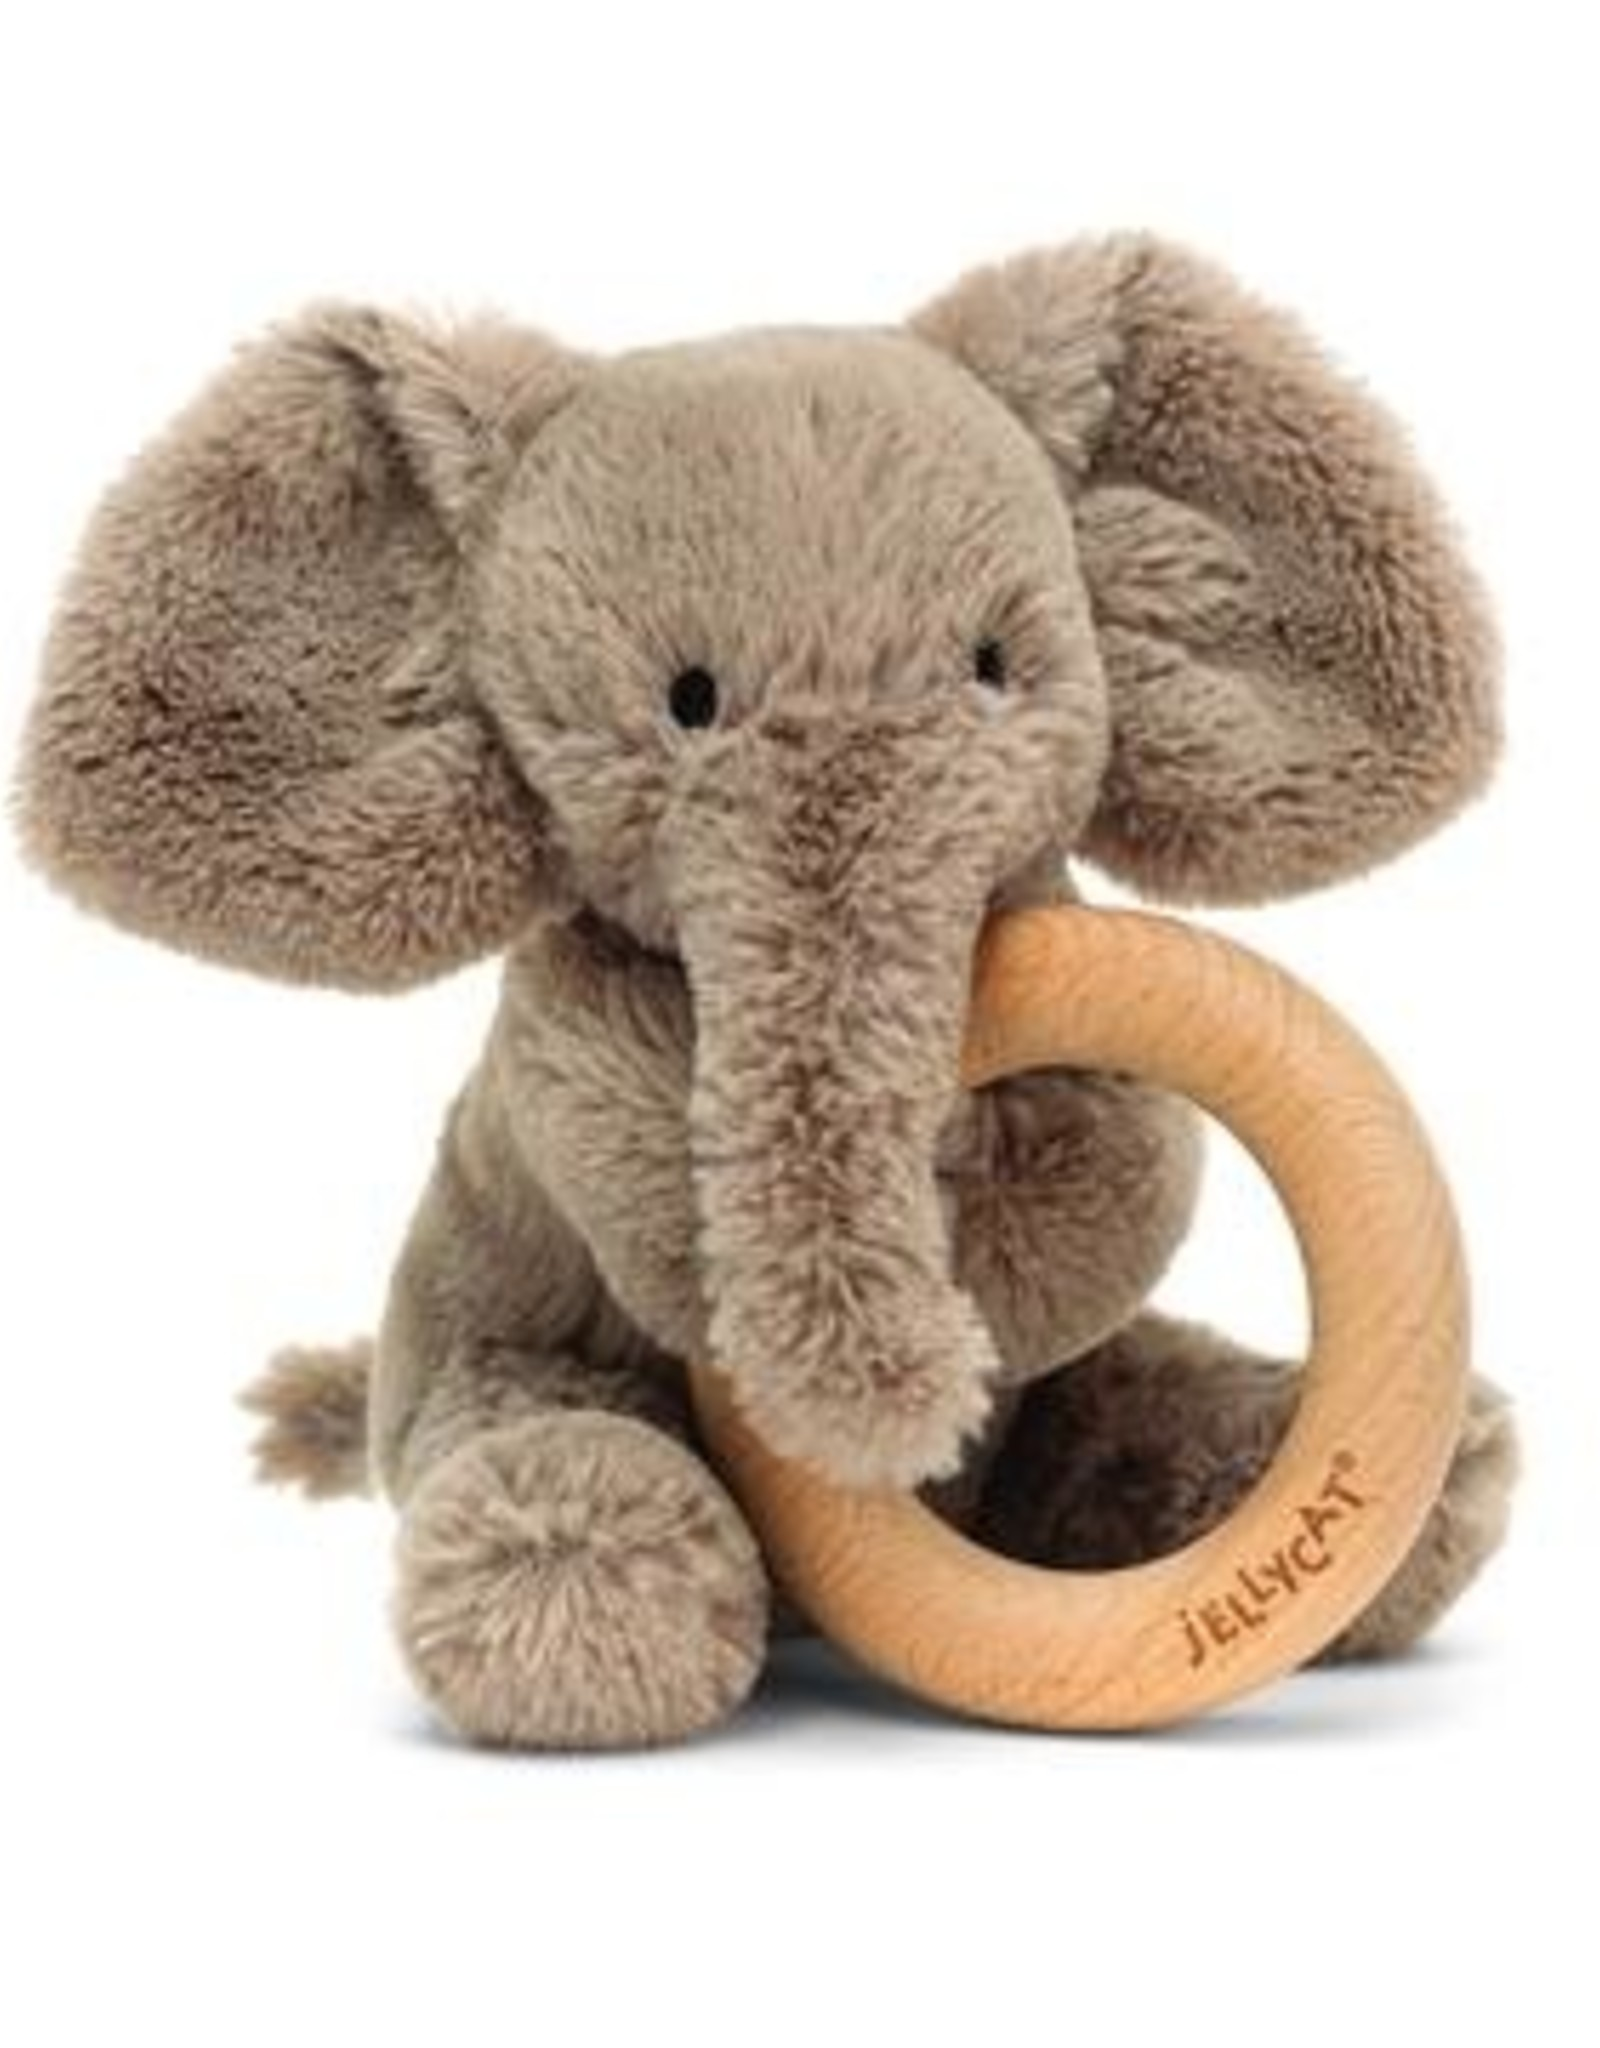 Jellycat Jellycat Smudge Elephant - Wooden Ring Rattle